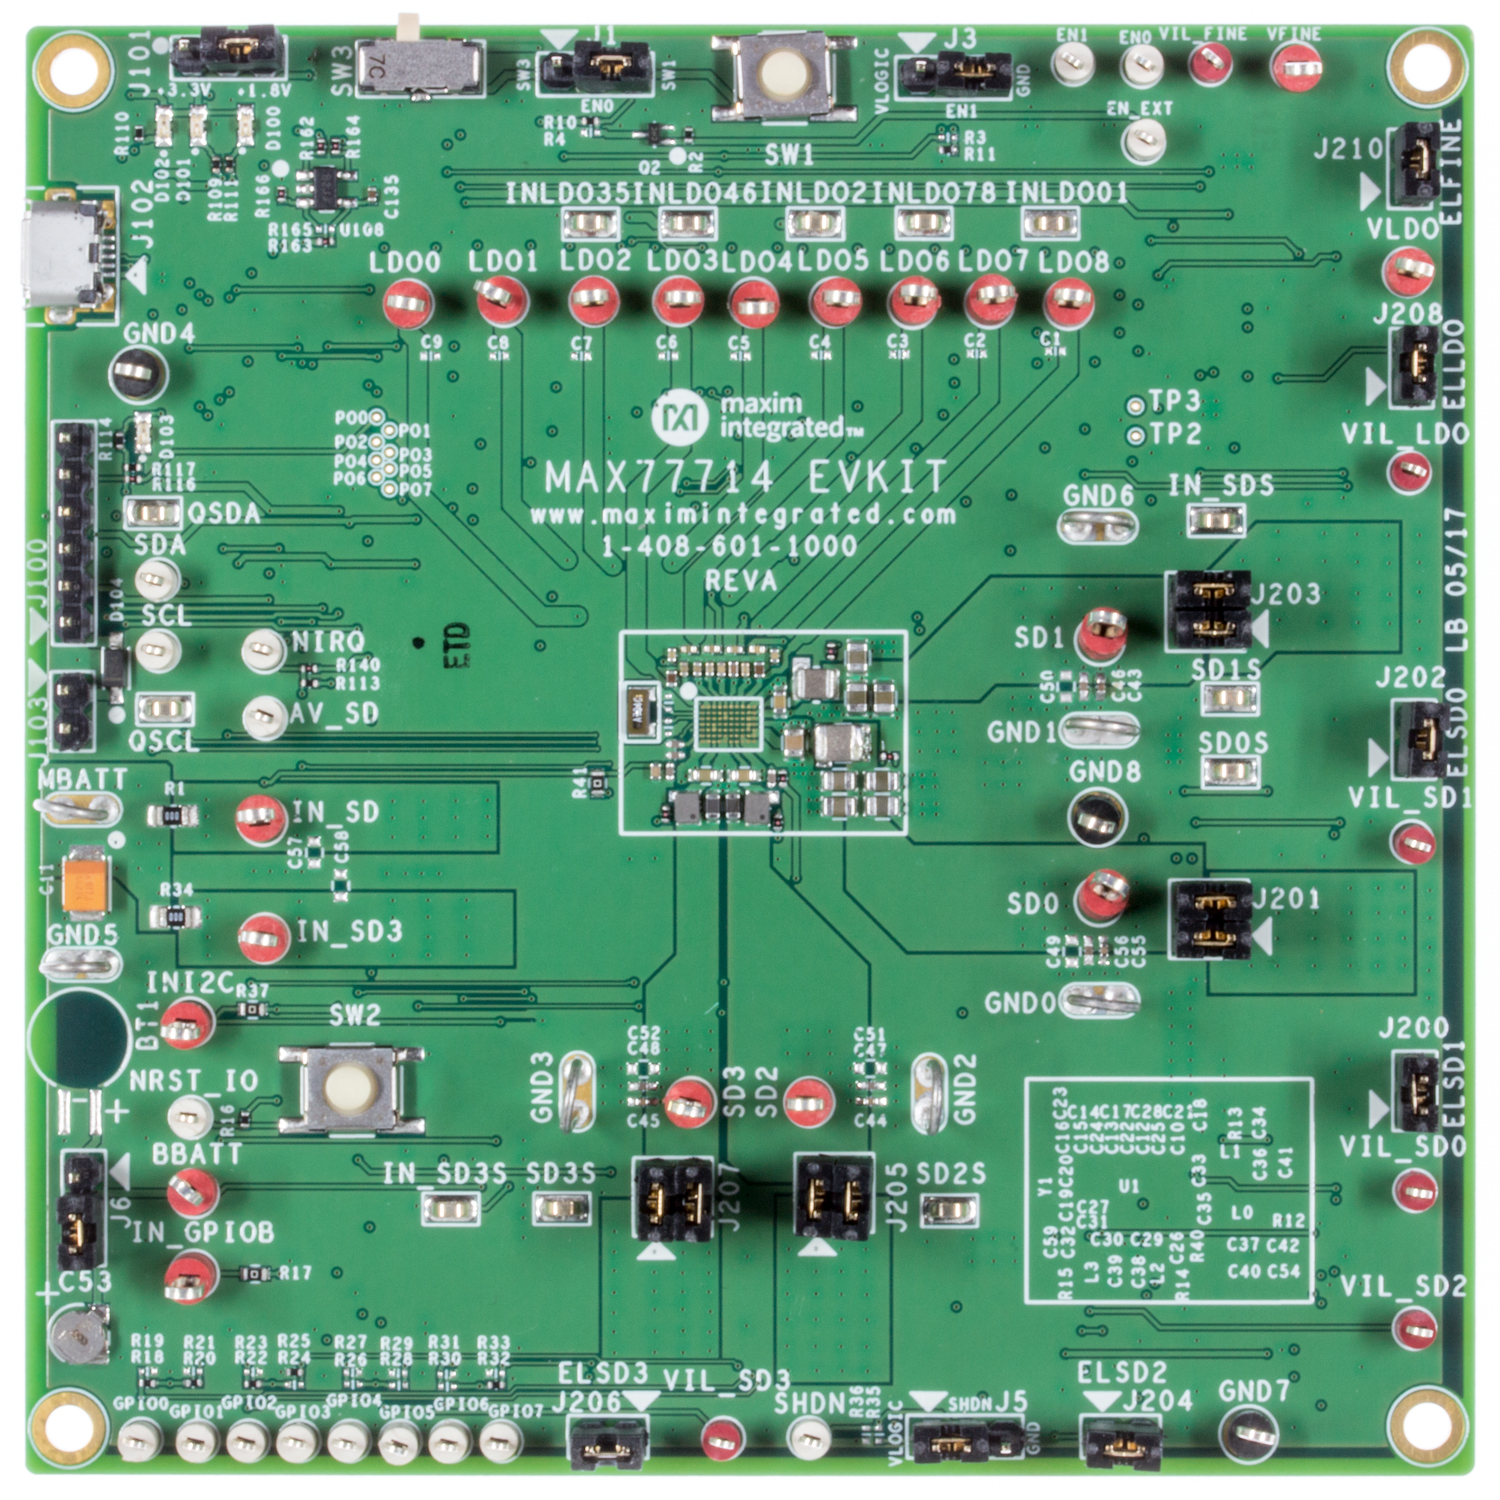 Power Solutions For Xilinx Fpgas Maxim Realtime Clock Calendar Ic Electronics And Electrical Engineering Max77714